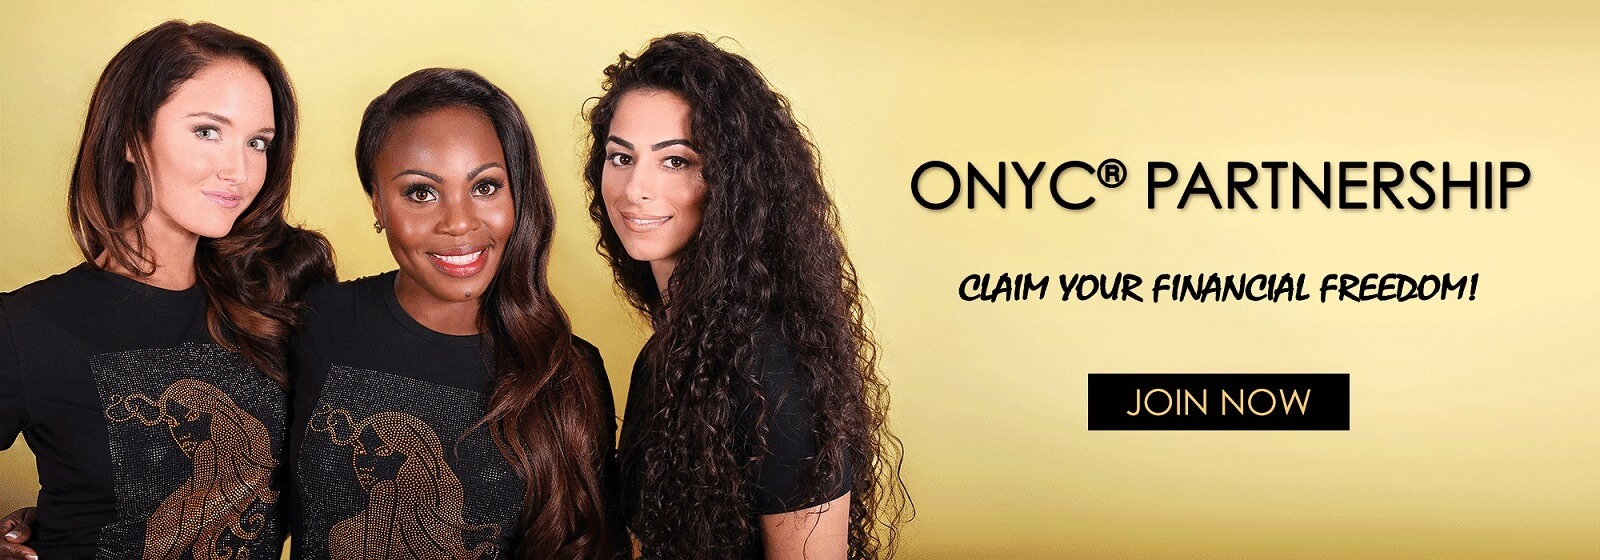 ONYC Hair Partnership Banner. NO 1 Hair Extensions Shop for Virgin Hair! Black-Owned Company, Hair Brand for Best Natural Hair Extensions to match all Hair Types.